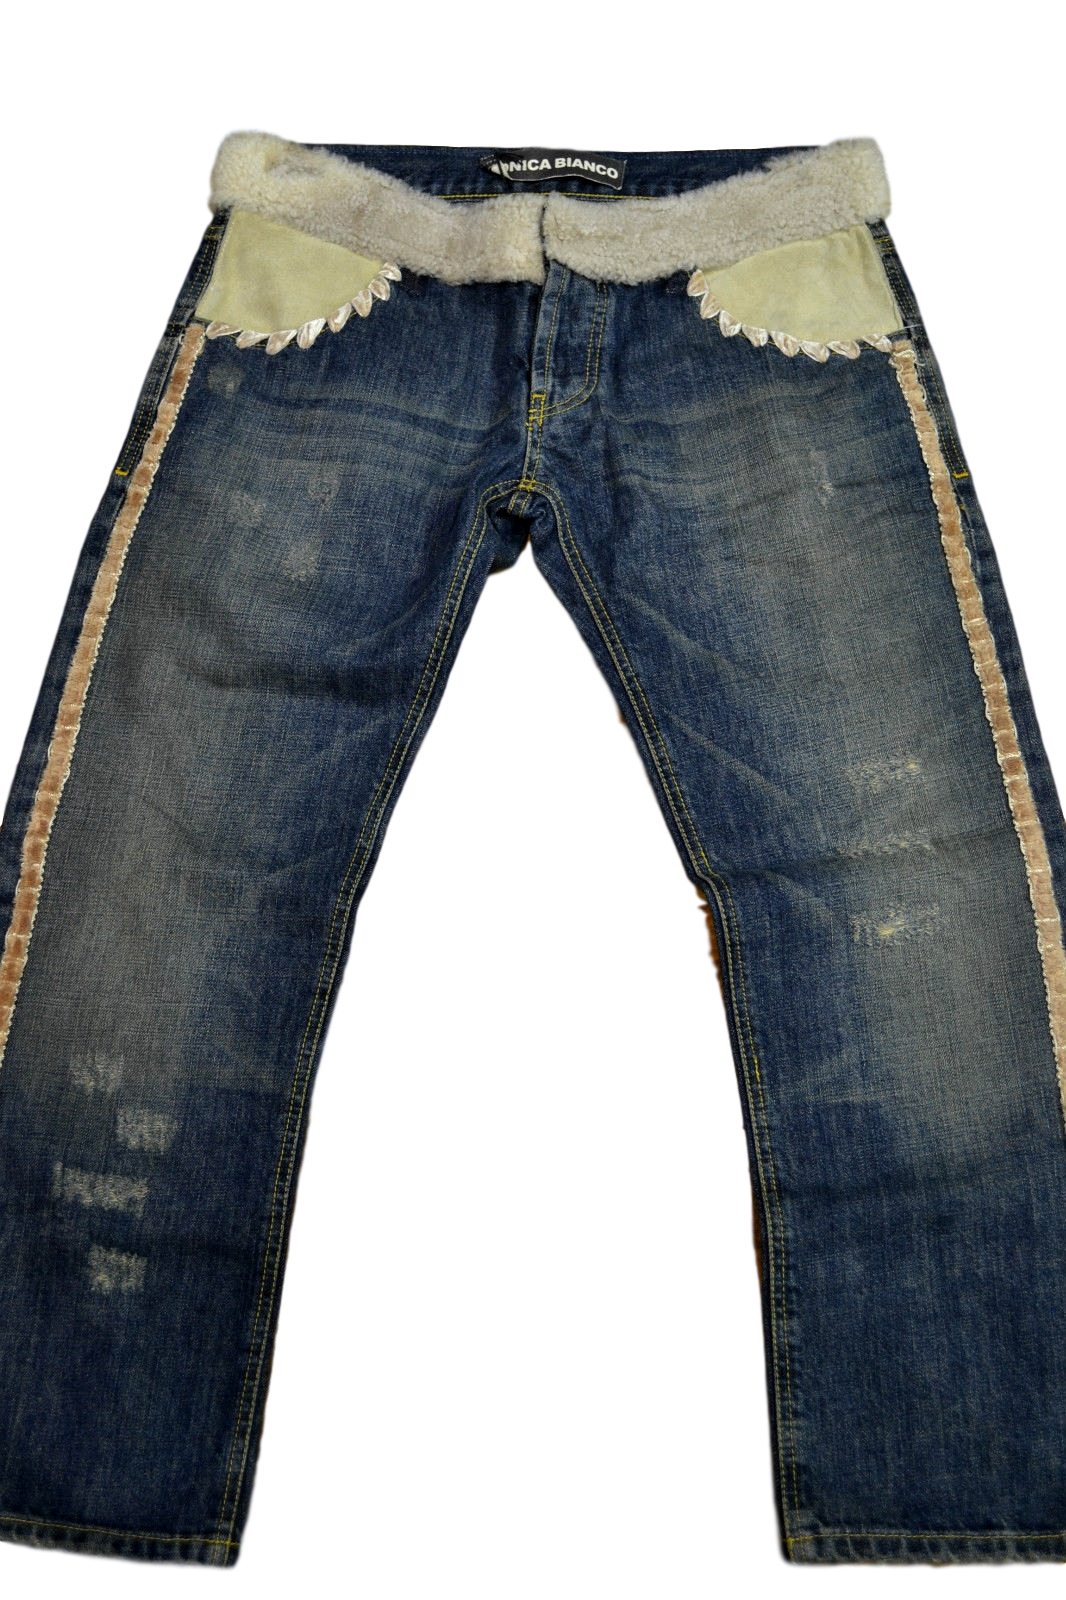 check out d348d 24acf JEANS DONNA CON APPLICAZIONI IN PELLICCIA TG. SIZE 26 JEANS WITH FUR DETAILS